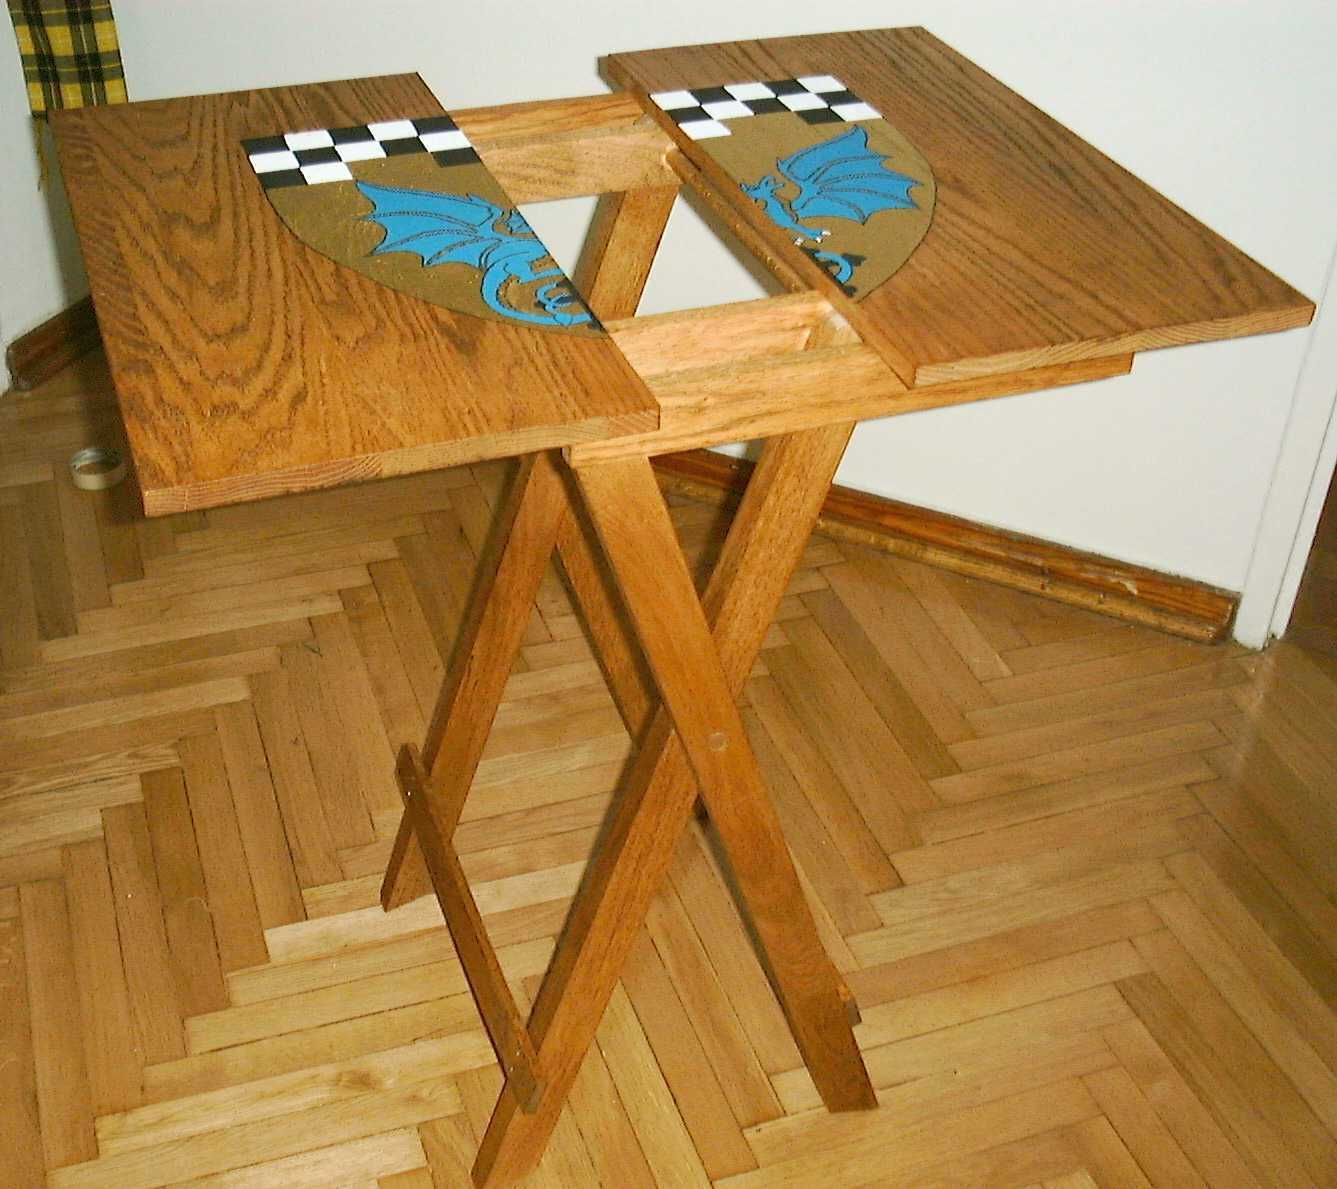 Build Diy Small Wood Folding Table Plans Plans Wooden Playground Bench Plans Wood Folding Table Woodworking Bench Plans Folding Table